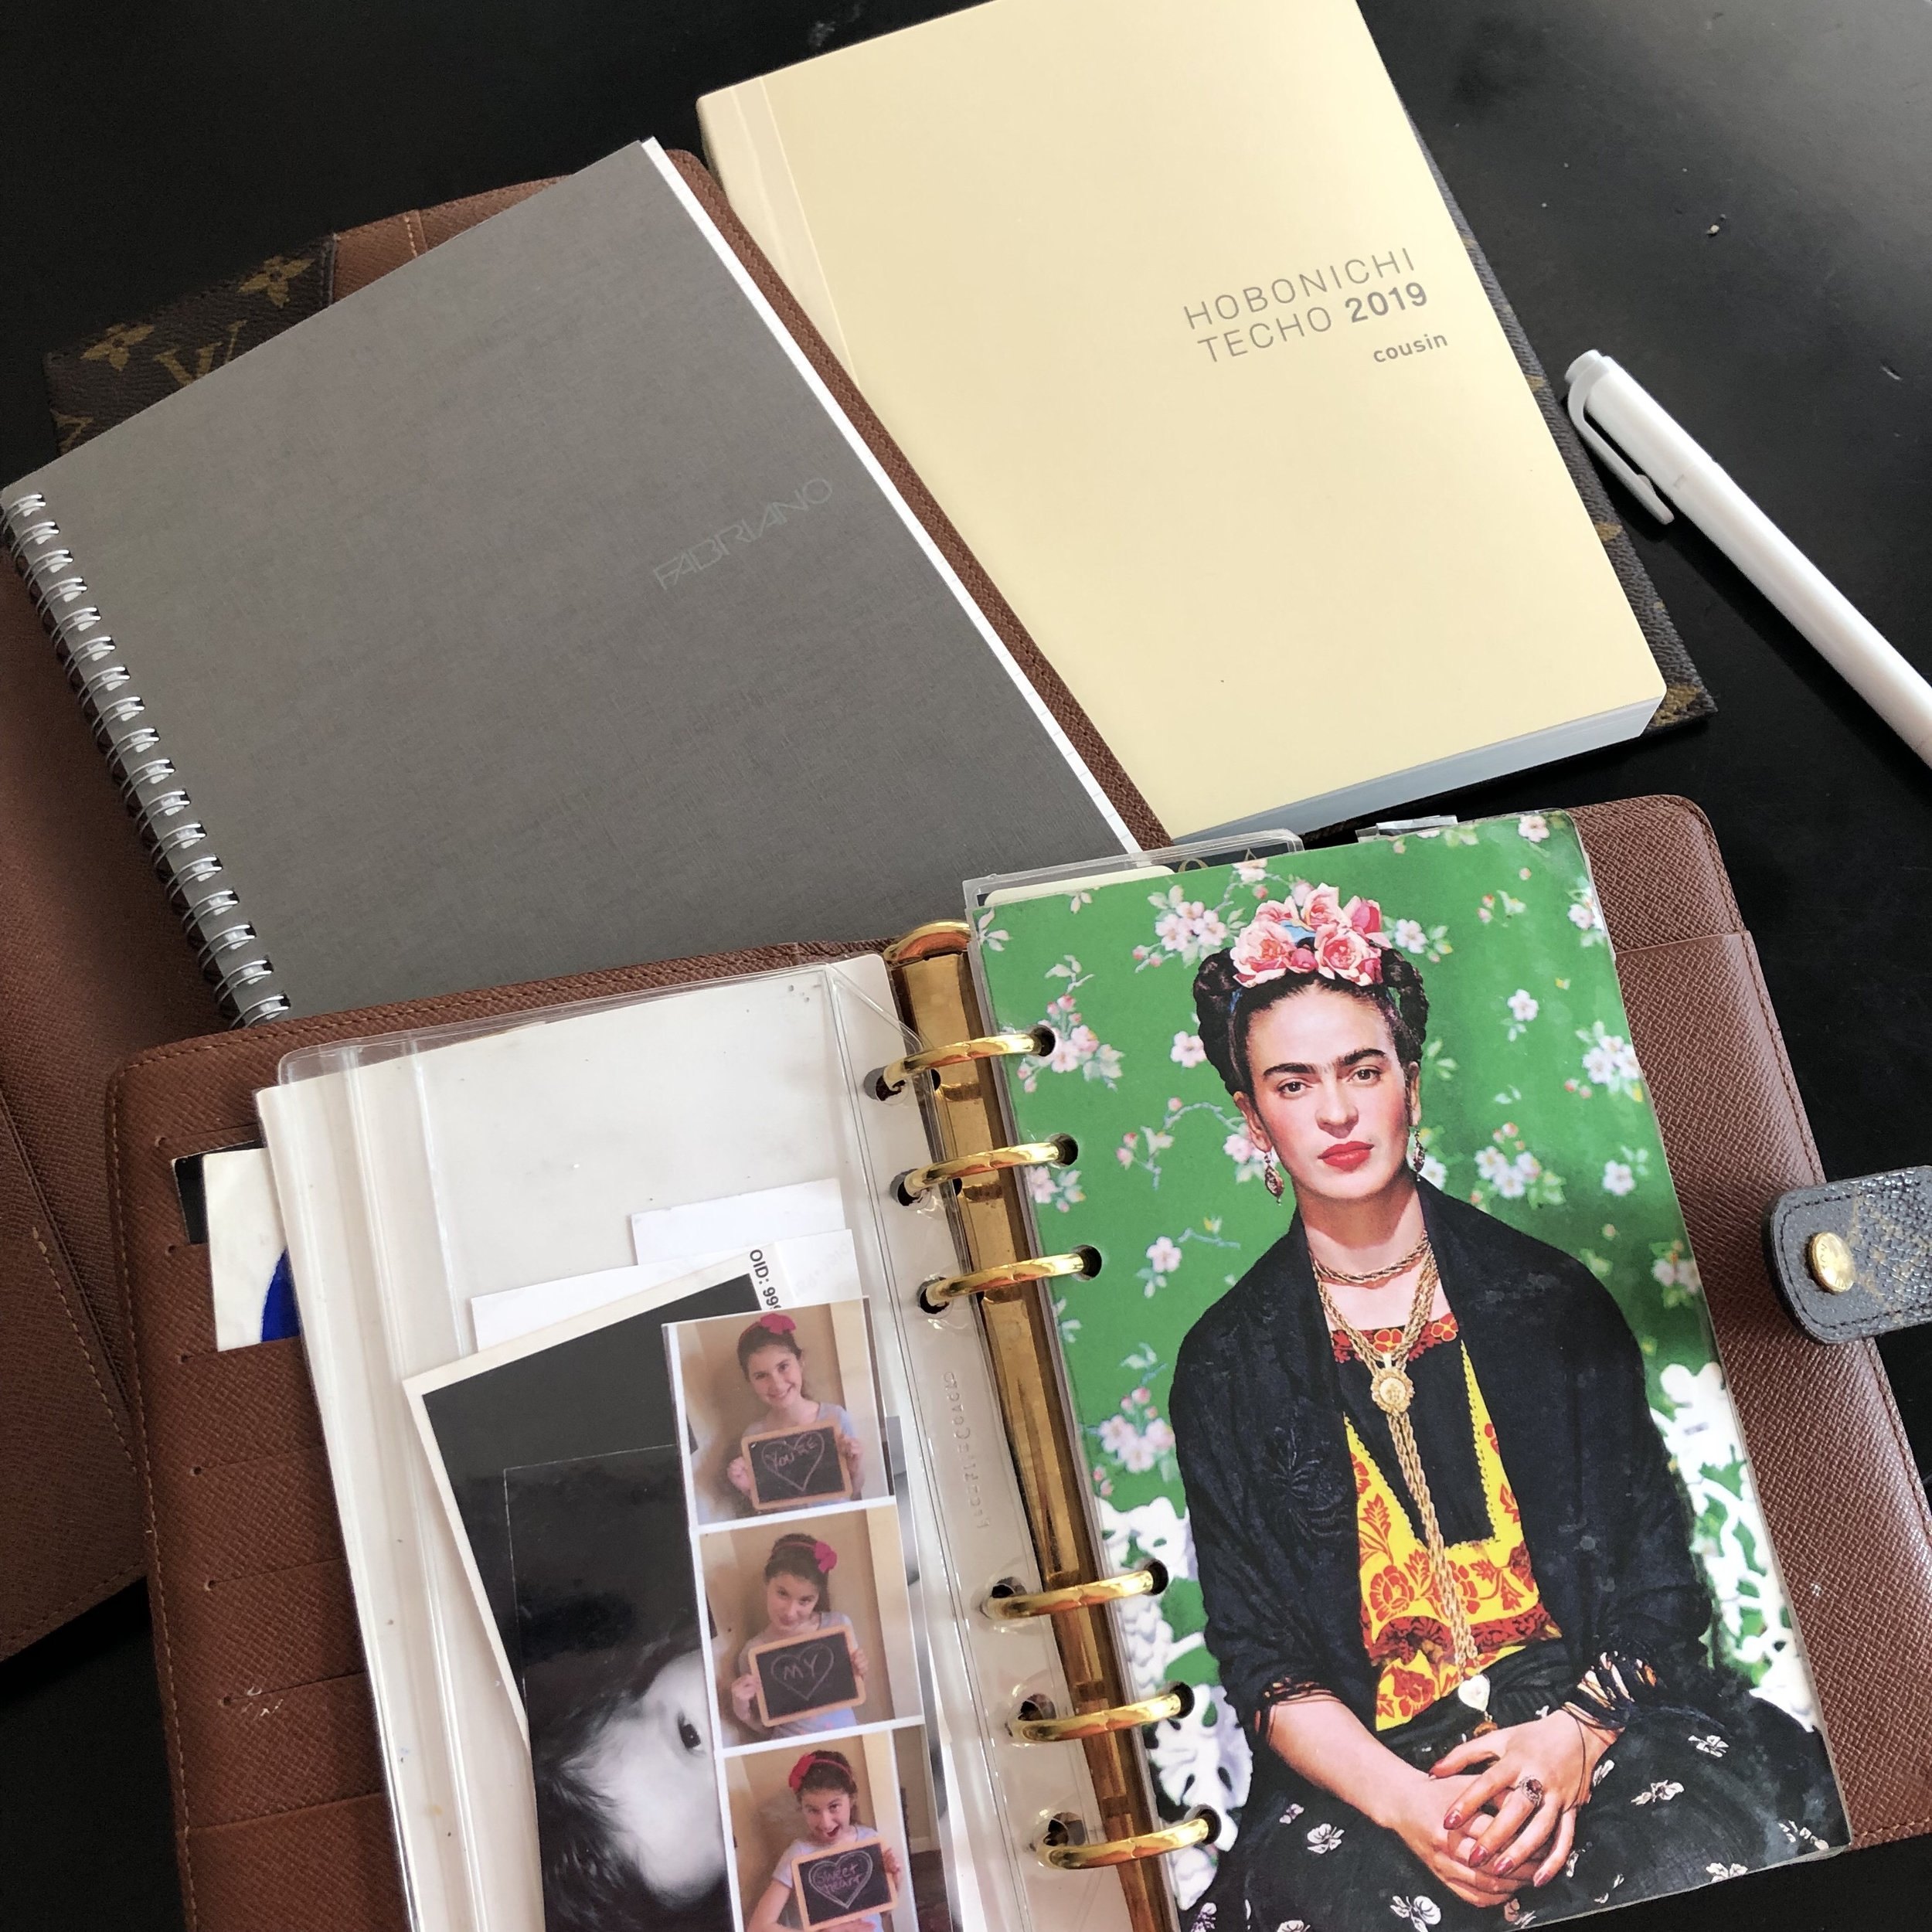 My loves and inspiration: Hobonichi, Louis Vuitton and Frida Kahlo